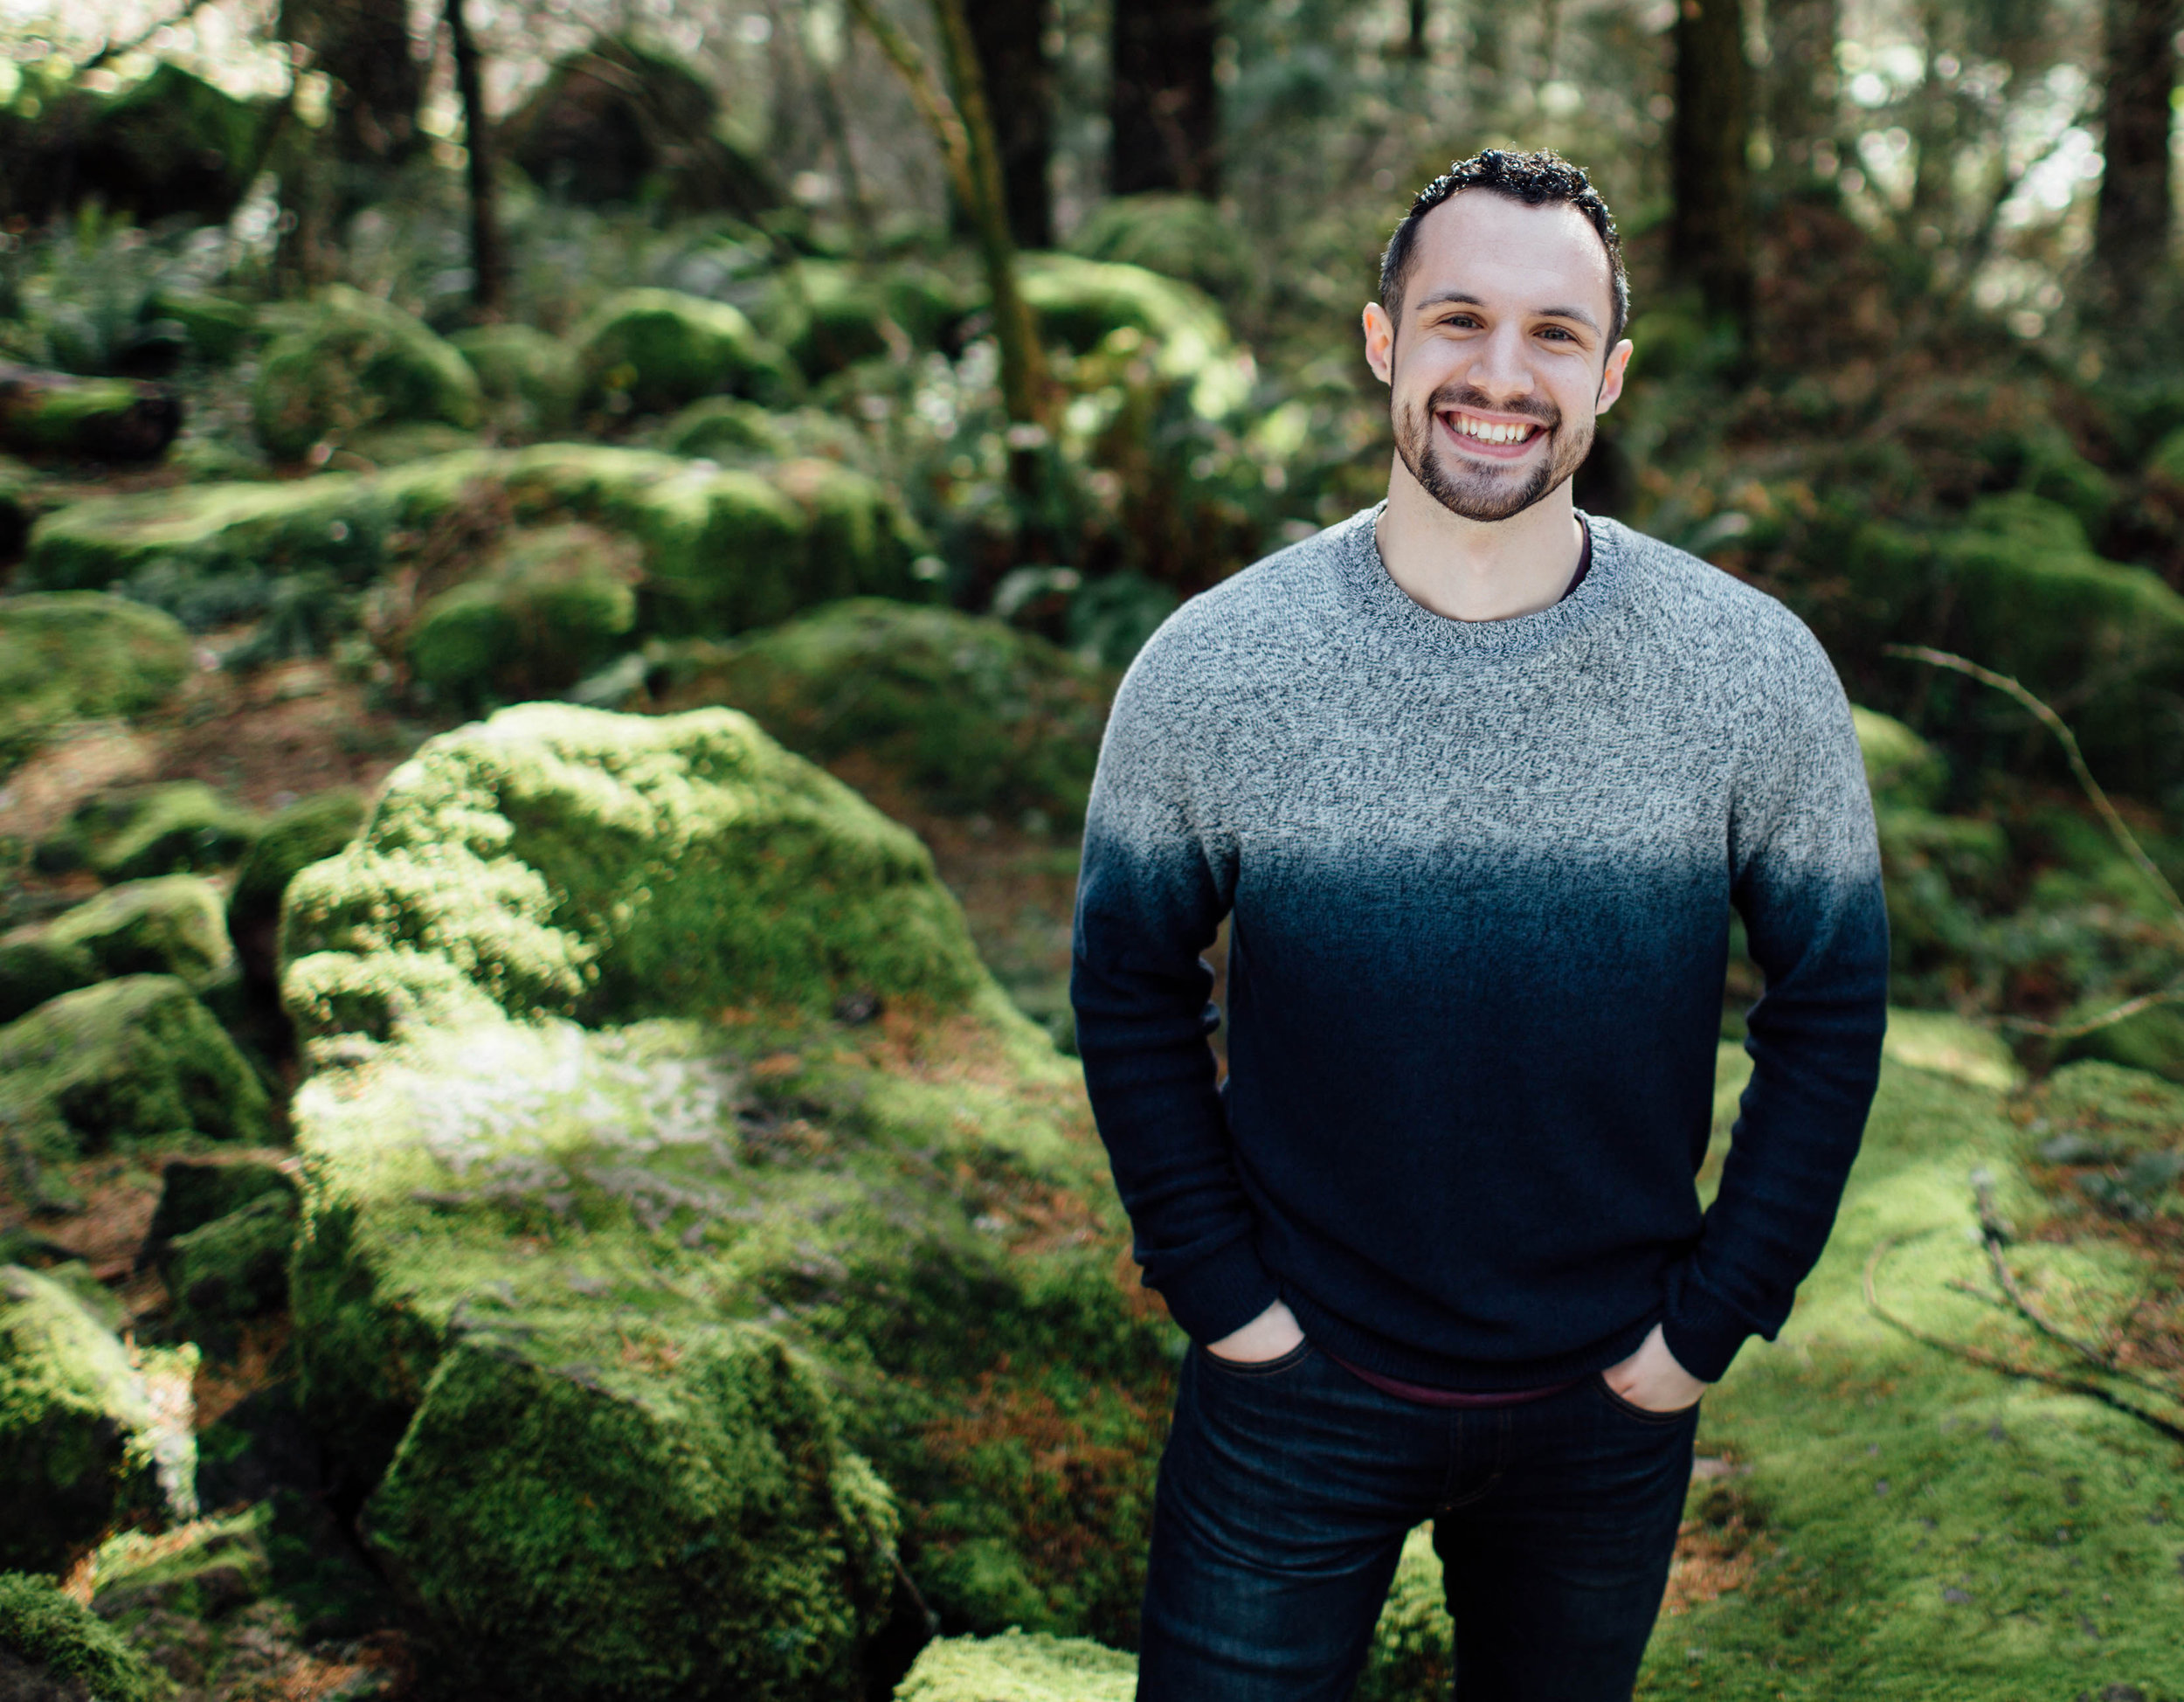 Meet the AUTHOR - NATHANAEL CLANTON IS AN ENTREPRENEUR, AUTHOR, BLOGGER, CREATIVE DIRECTOR, SPEAKER, AND BRAND CONSULTANT.More than a decade as an entrepreneur in the design industry working with globally influential brands like Nike, Brand Jordan, Microsoft, Xbox, Swingman (Ken Griffey Jr.), Windows Phone, ASICS, Apple, and GAP has made it his passion to act as a translator for vision, and helped him develop a process for intentionally designing a balanced and fulfilling life. He has worked with companies of every size, from launching startups to overseeing the brands of multi-billion dollar corporate clients.HE HAS A HUGE PASSION FOR CONNECTING WITH PEOPLE AND HELPING THEM DISCOVER THEIR PERSONAL CREATIVITY AND THE PATH TOWARD THEIR DREAMS; WHICH HE DOES THROUGH WRITING, SPEAKING, MENTORING, AND GENUINE RELATIONSHIPS.A teacher at heart, Nathanael believes that being transparent with others is the foundation for trust. He cares deeply about showing people their value and teaching them to stand up for it. He also loves helping people uncover their hidden dreams and saving them time on their journey by sharing lessons he's learned through experience.Nathanael lives in Portland, Oregon with his wife, best friend, and business partner Shannon, an accomplished photographer, stylist and blogger. They spend their days creating side-by-side, cooking, adventuring, laughing, and being in love. He is a Believer, an optimist, a movie lover, a huge Lord Of The Rings and Star Wars nerd, and addicted to reading books and learning new things. Nathanael loves good design, and believes the best kind of design is a well-designed life, full of passion, laughter, and fulfillment.